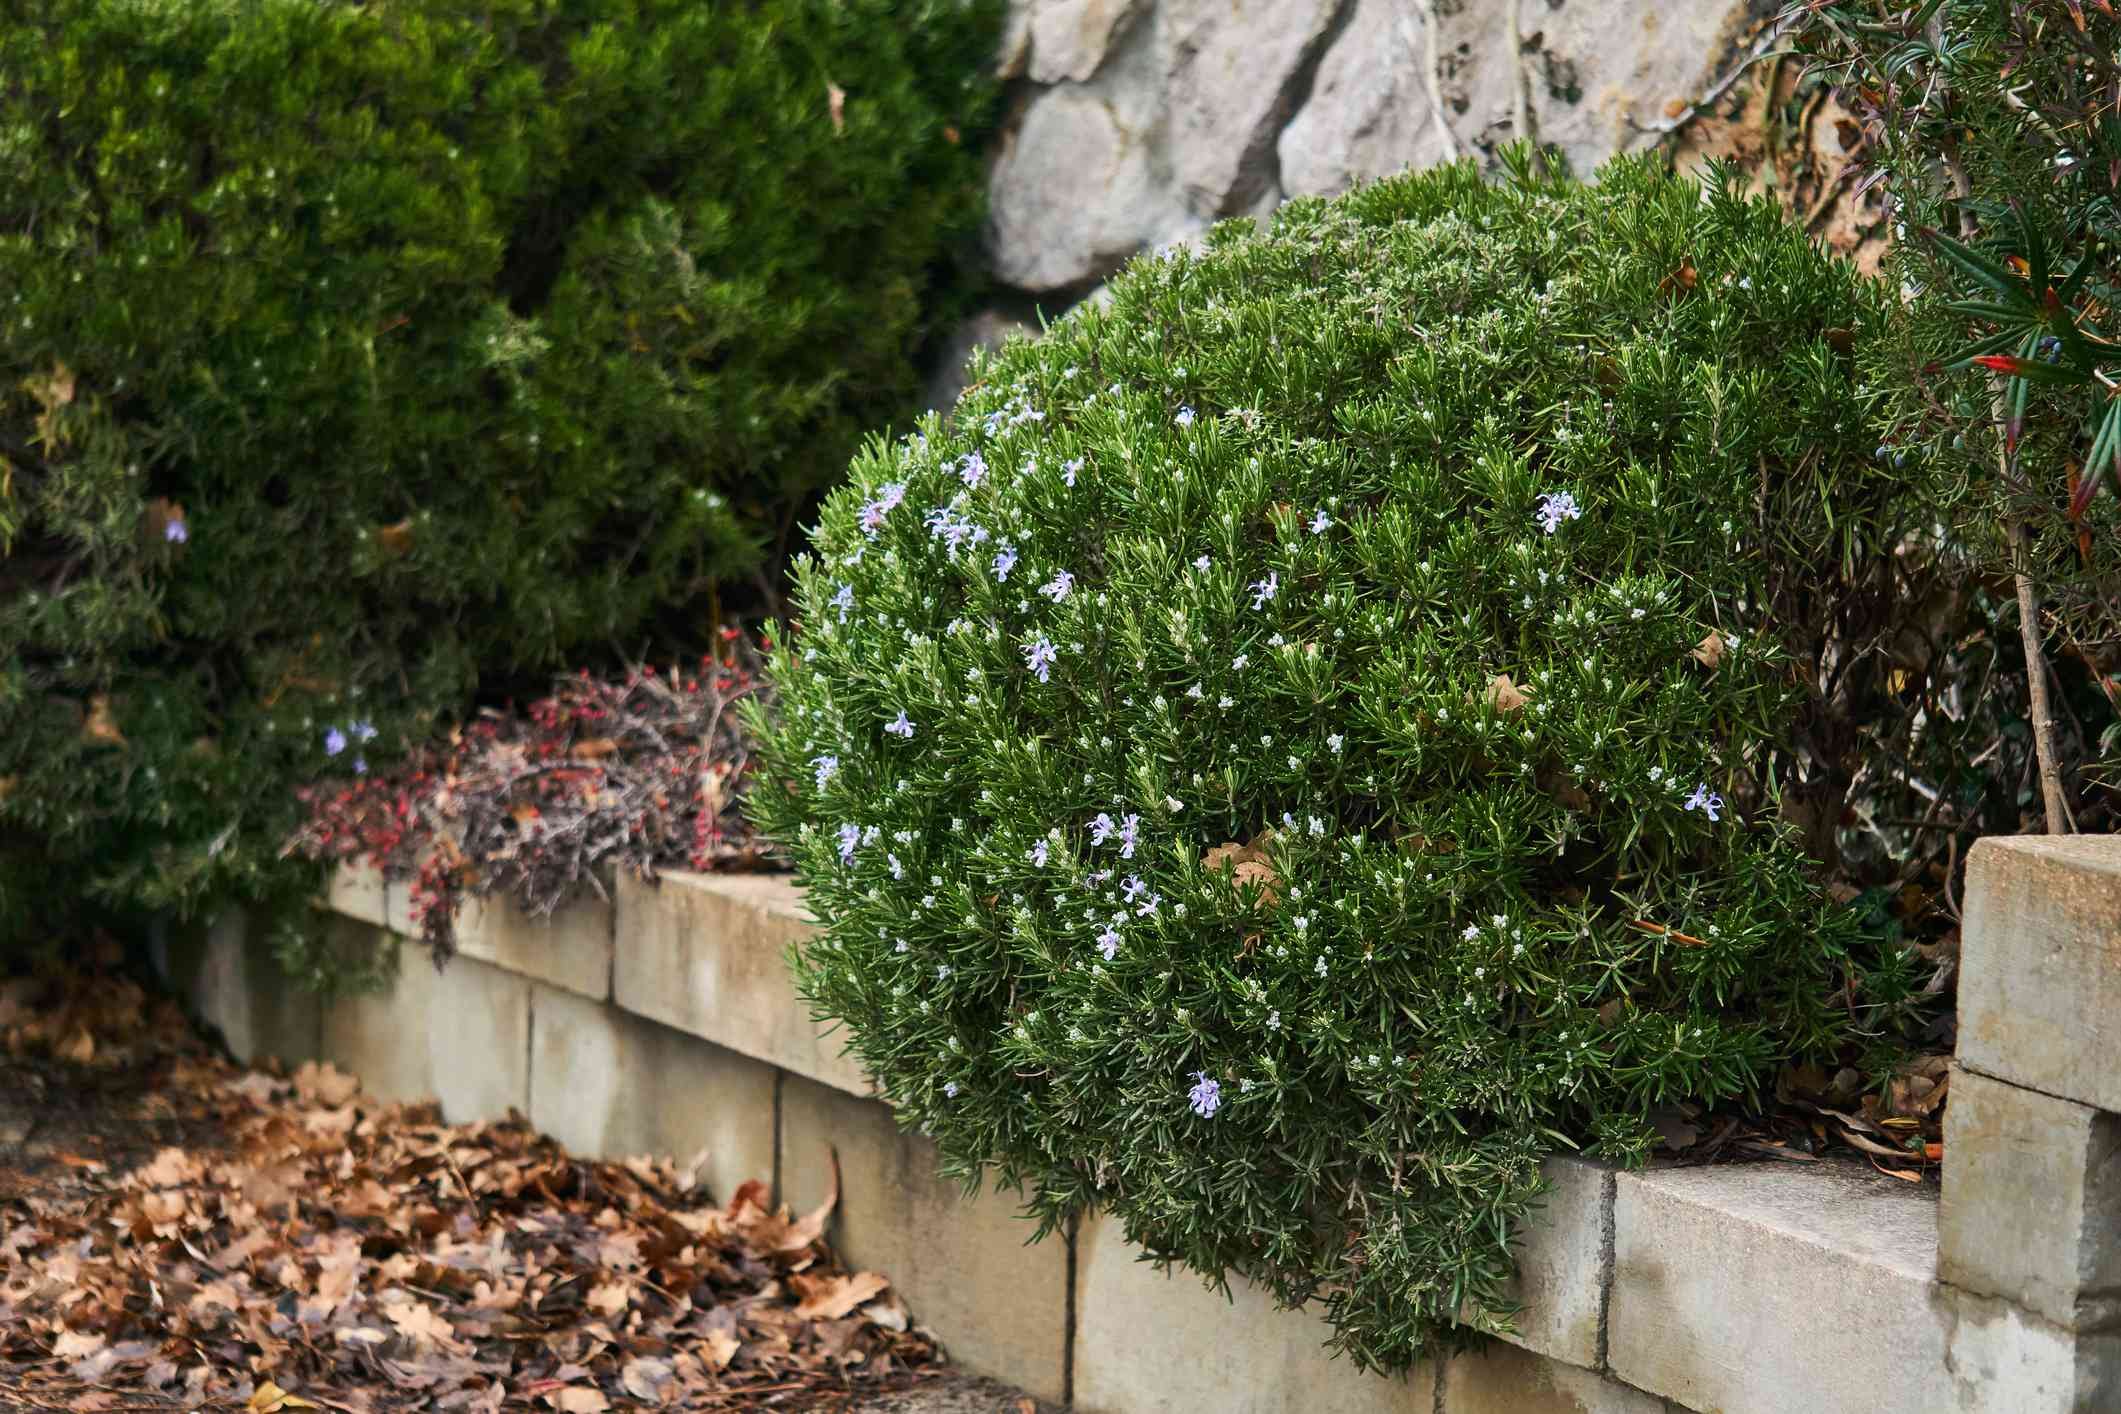 trimmed rosemary bush blooms in winter over fallen leaves